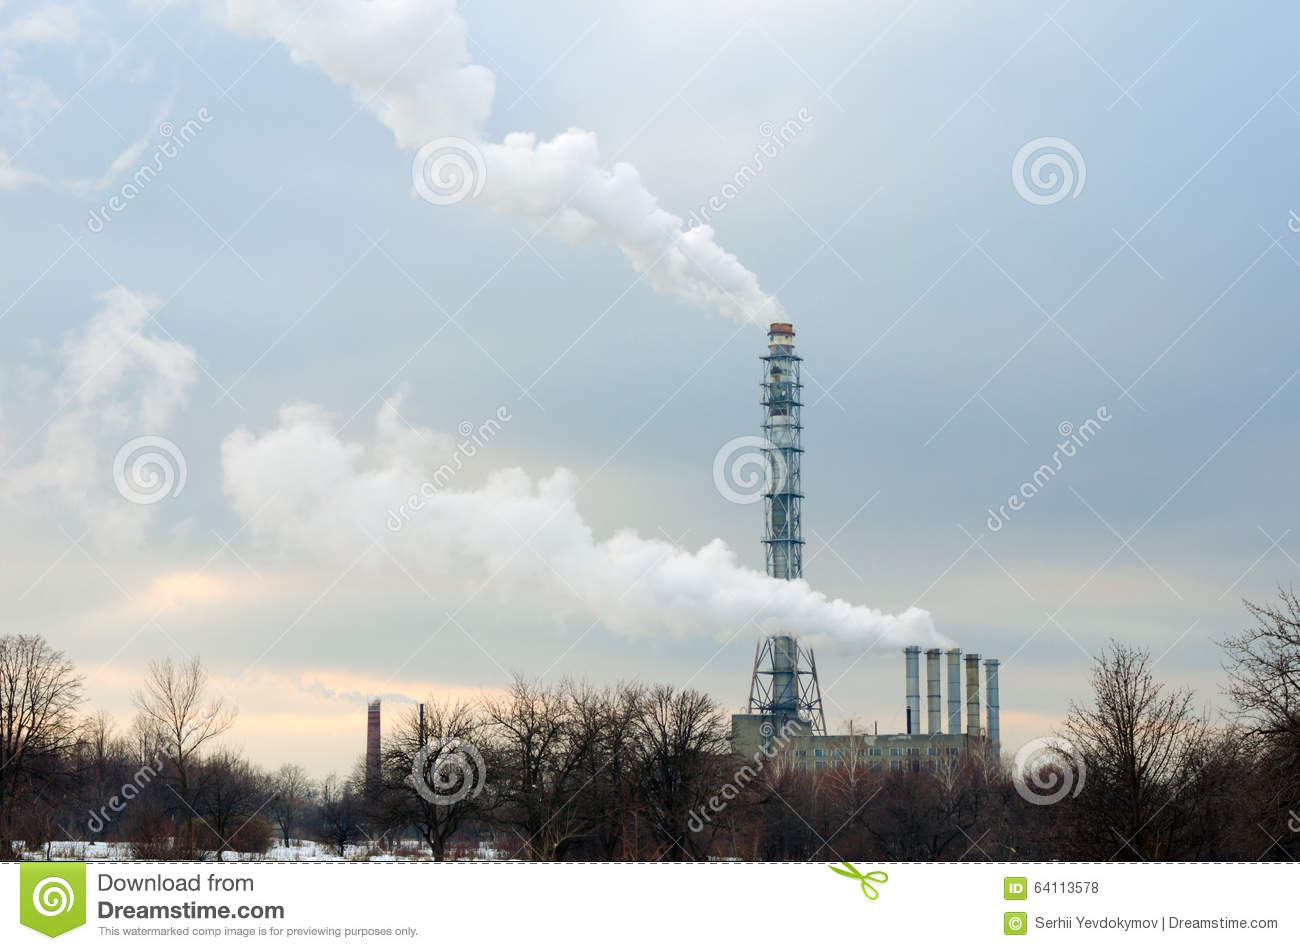 Smoking chimneys boiler on a background of trees, snow and sunset sky